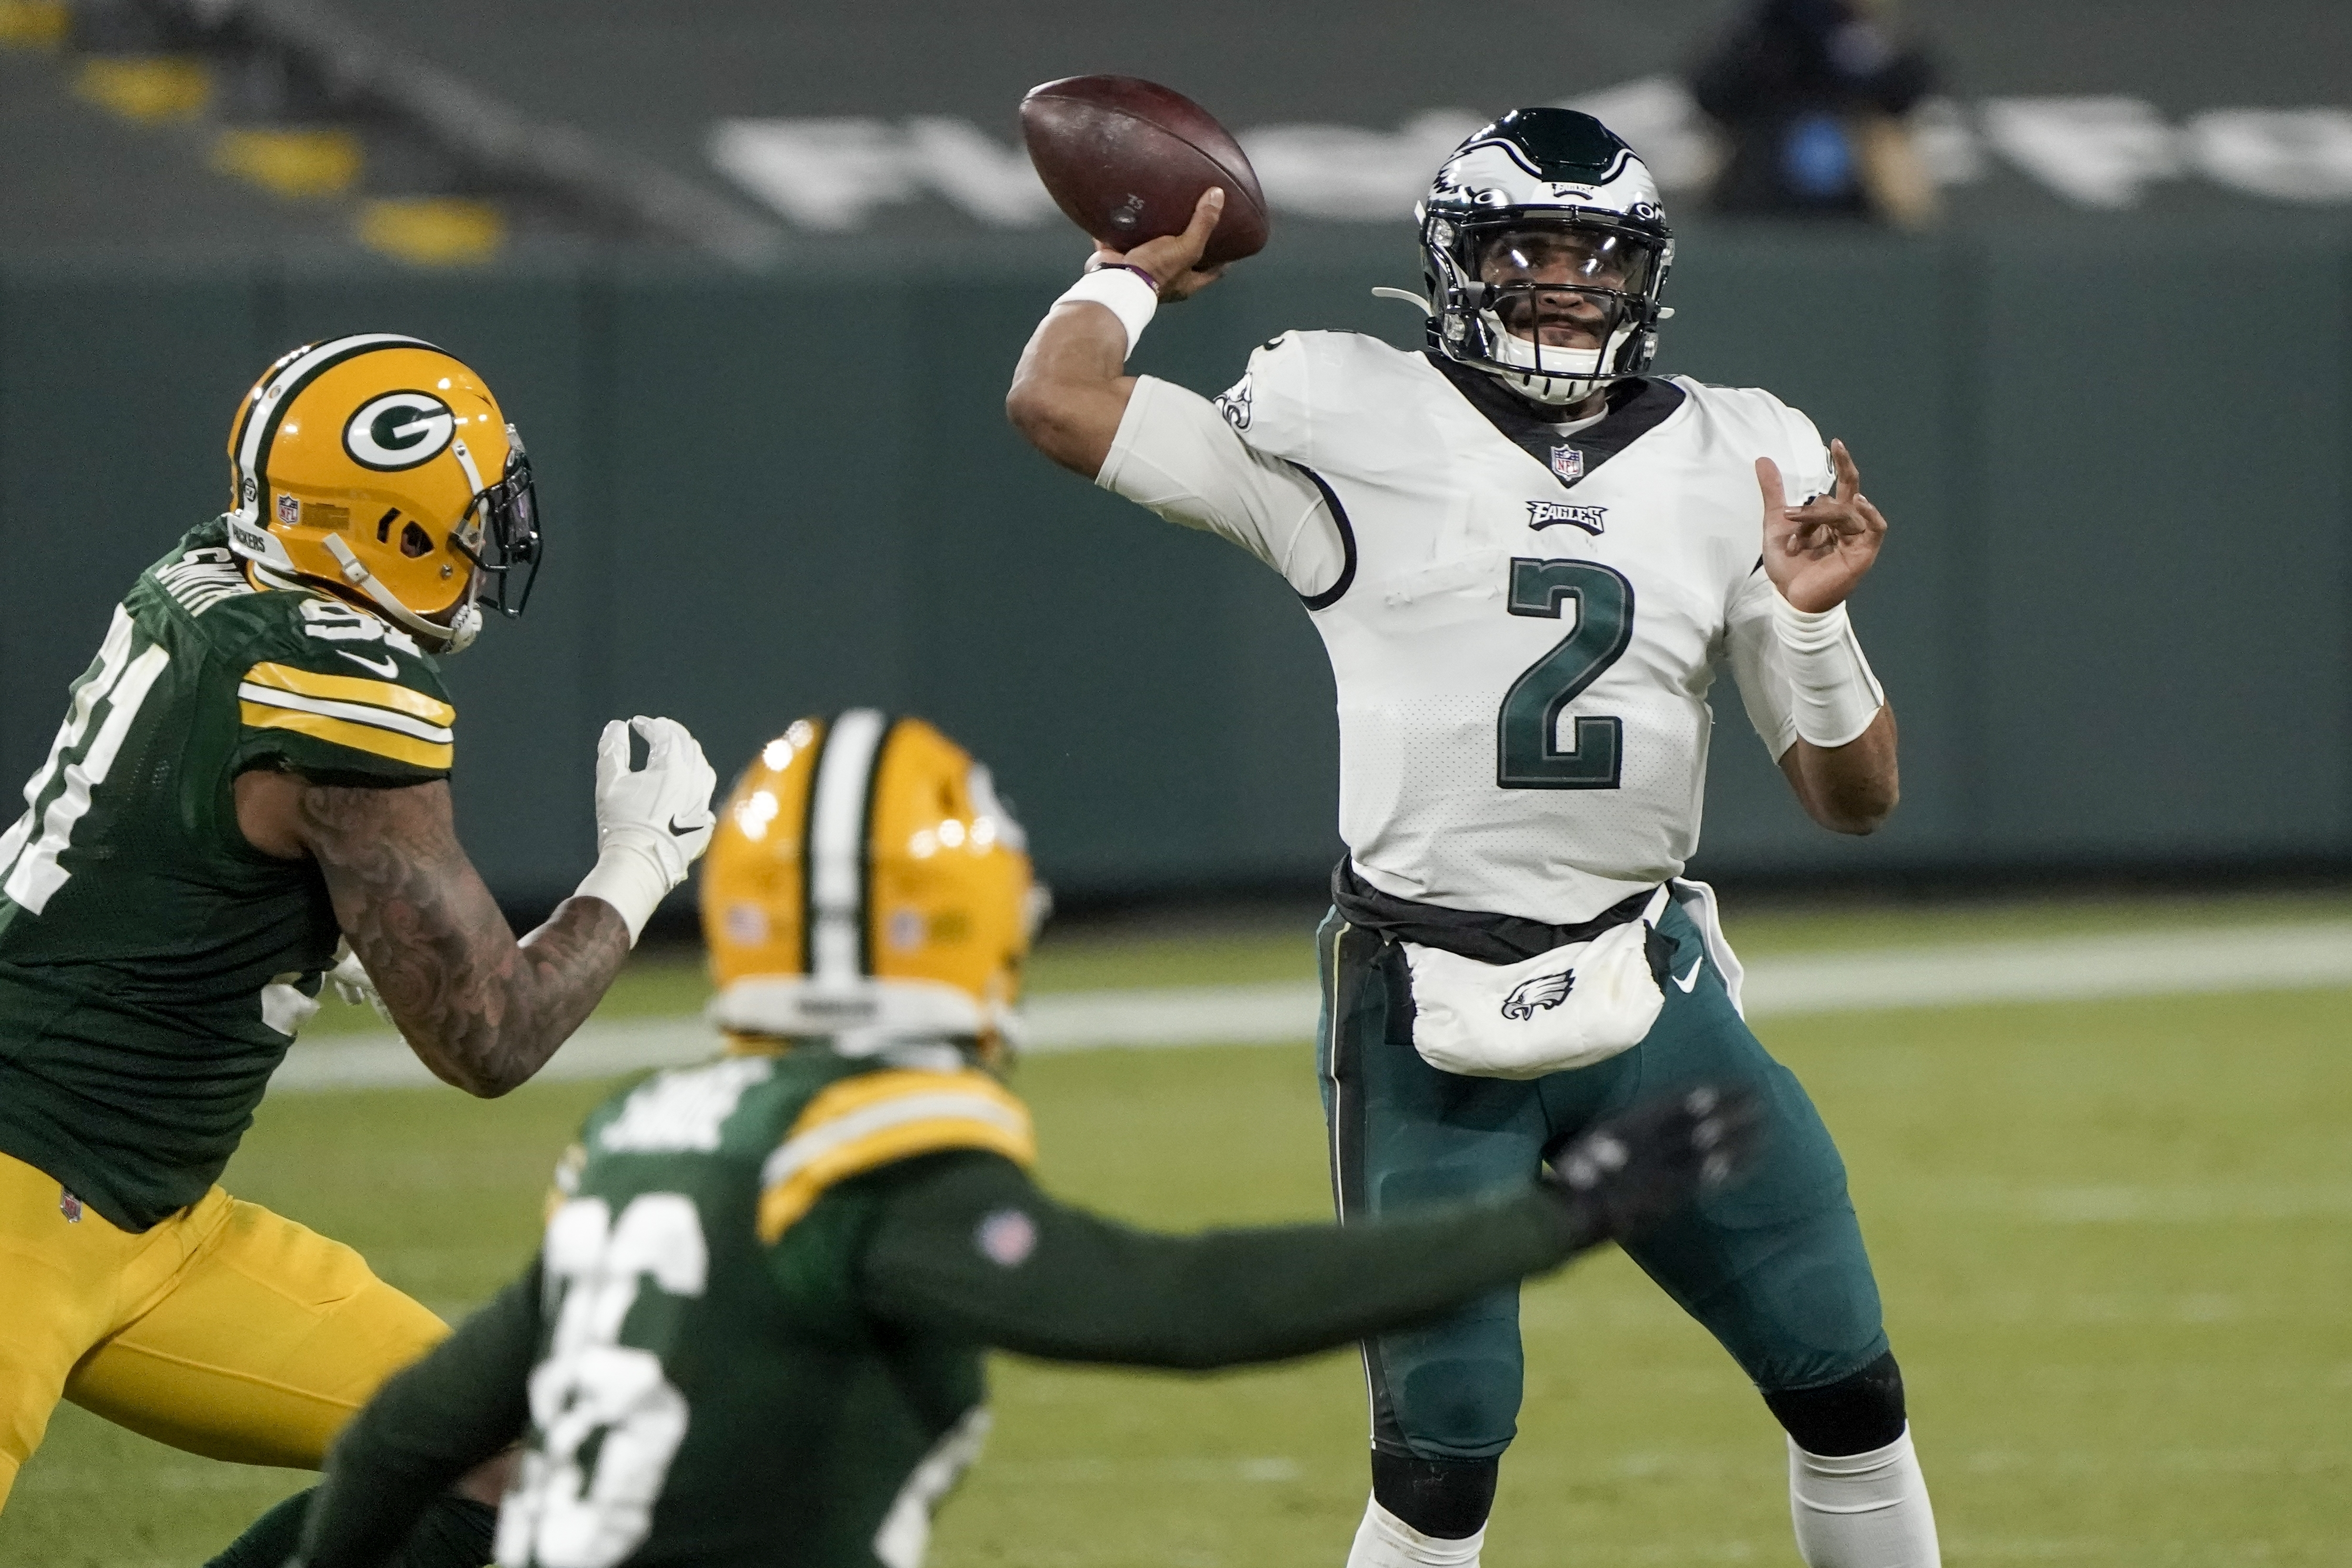 Eagles quarterback situation hazy after Carson Wentz benched for Jalen Hurts – Fox News